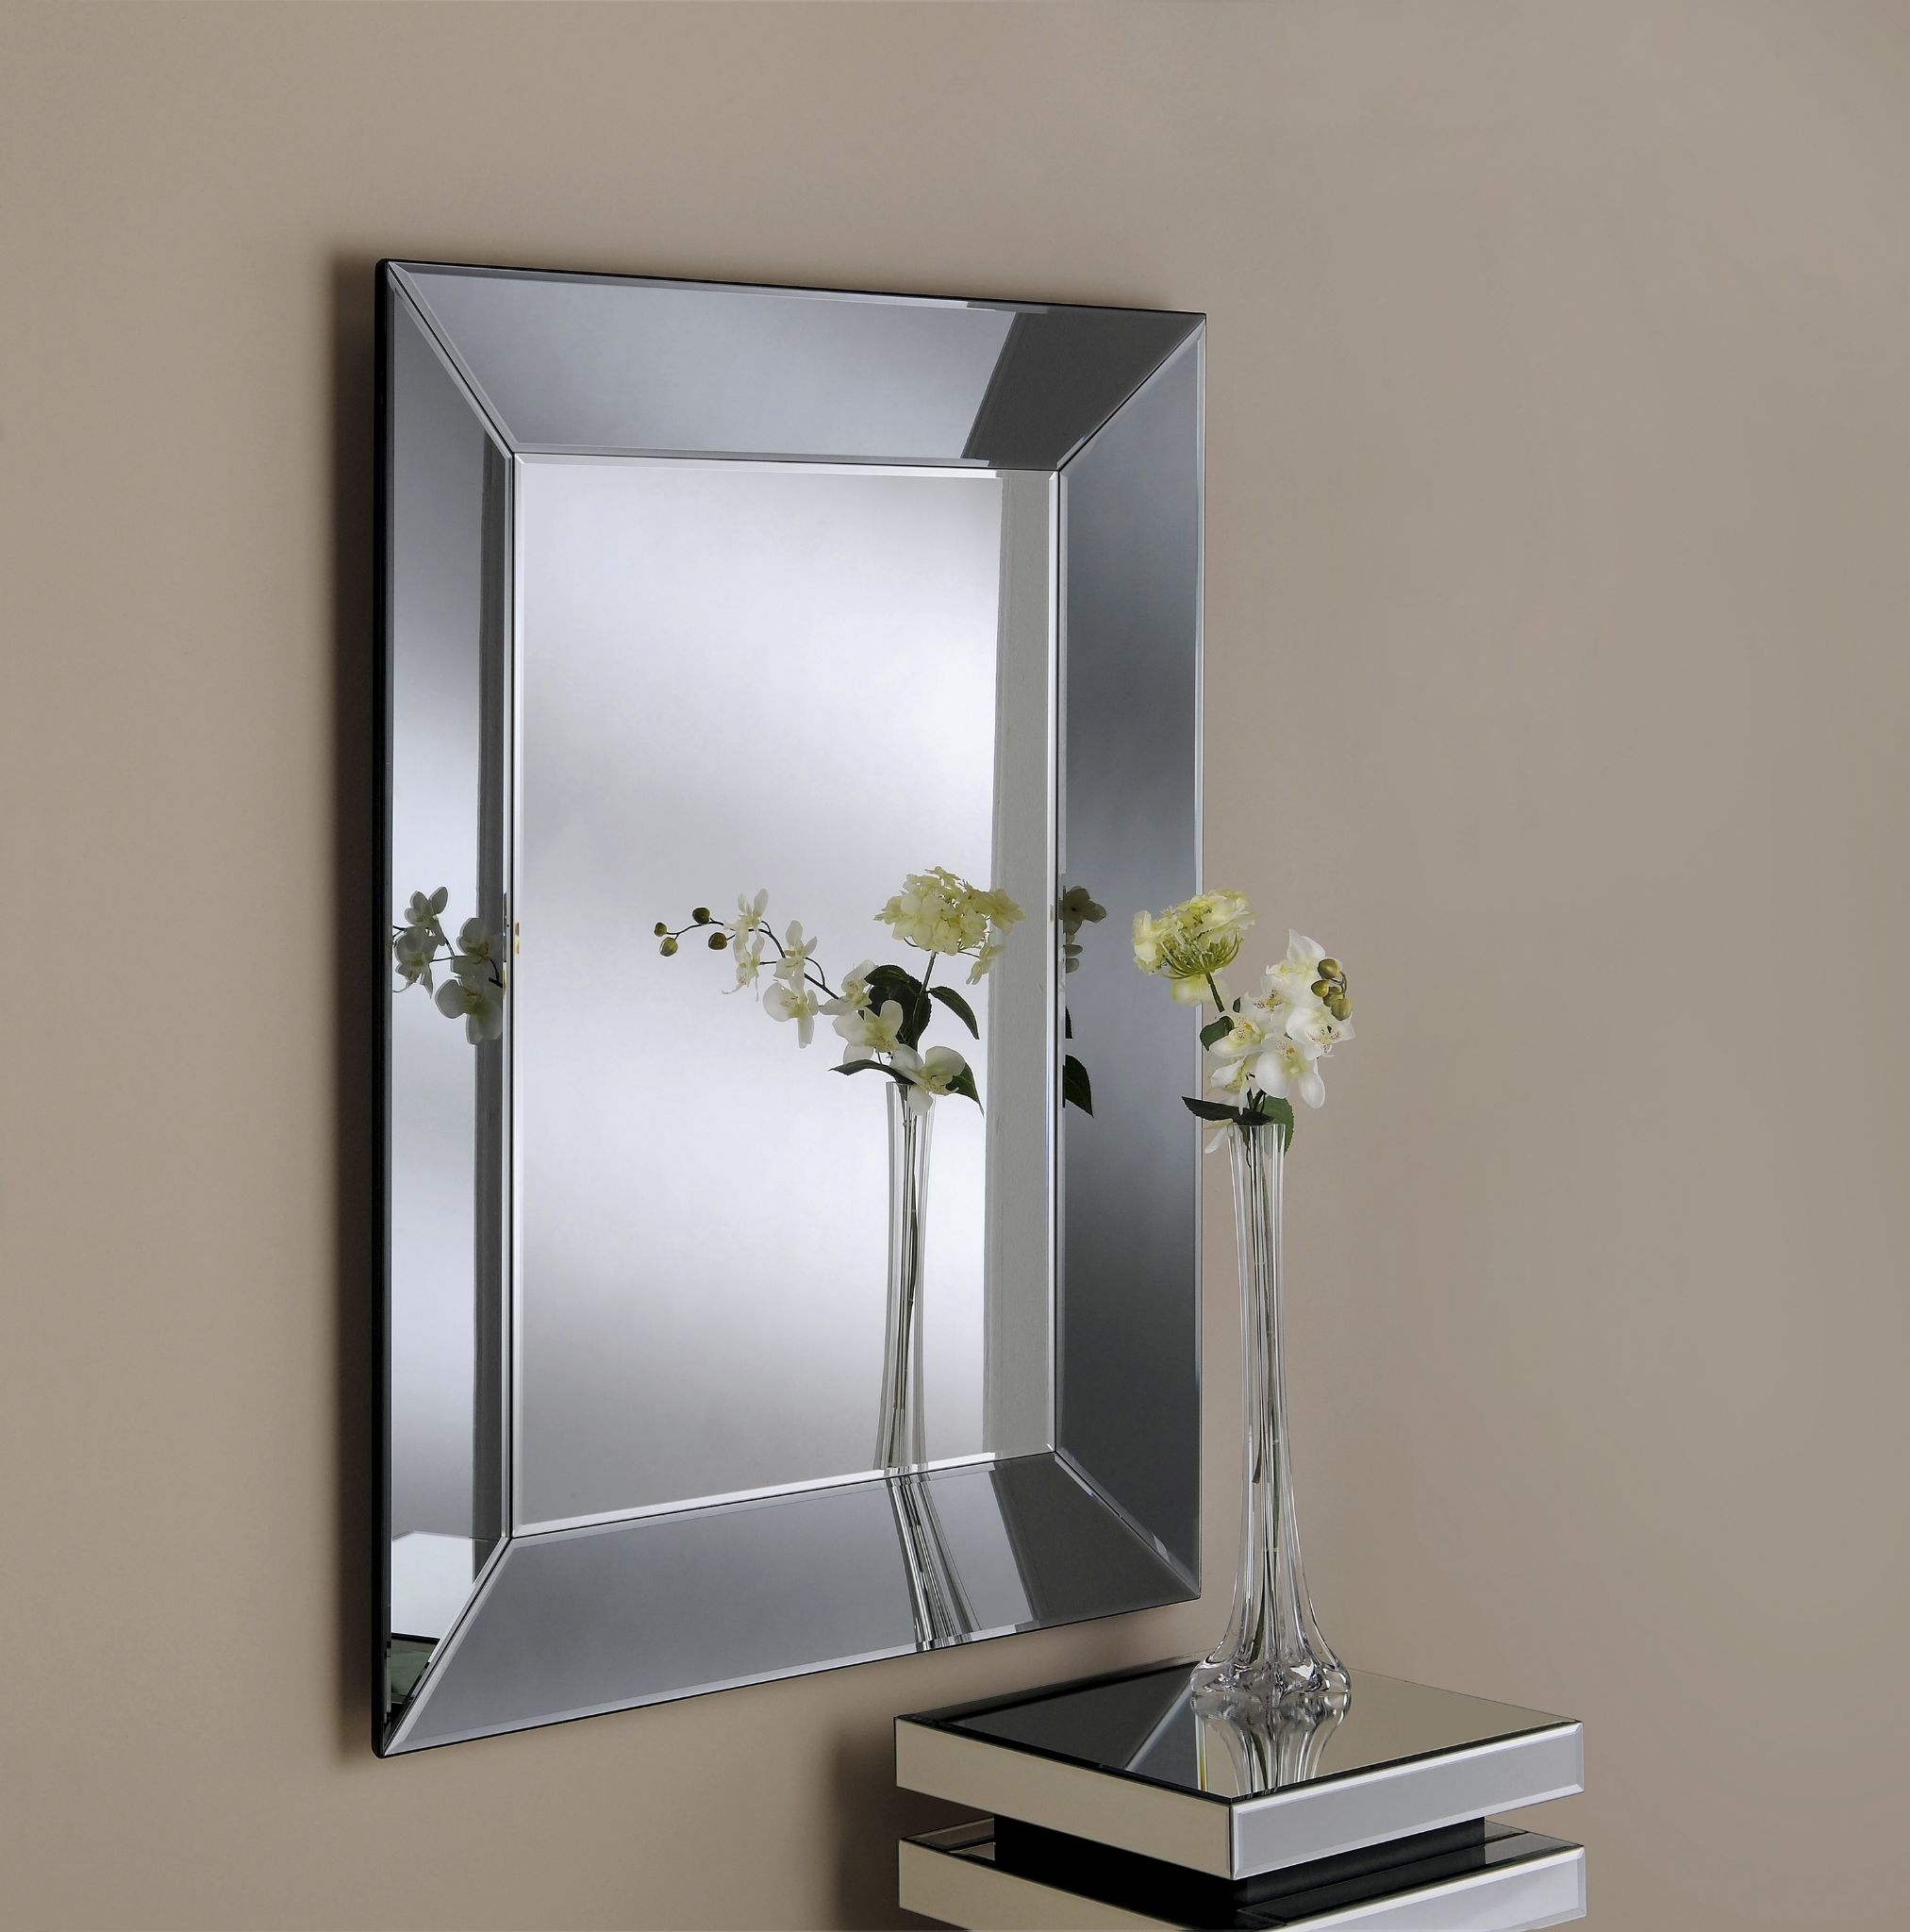 Sheffield Home Beveled Glass Mirror Home Design Ideas: 15 Best Collection Of Bevelled Glass Mirror